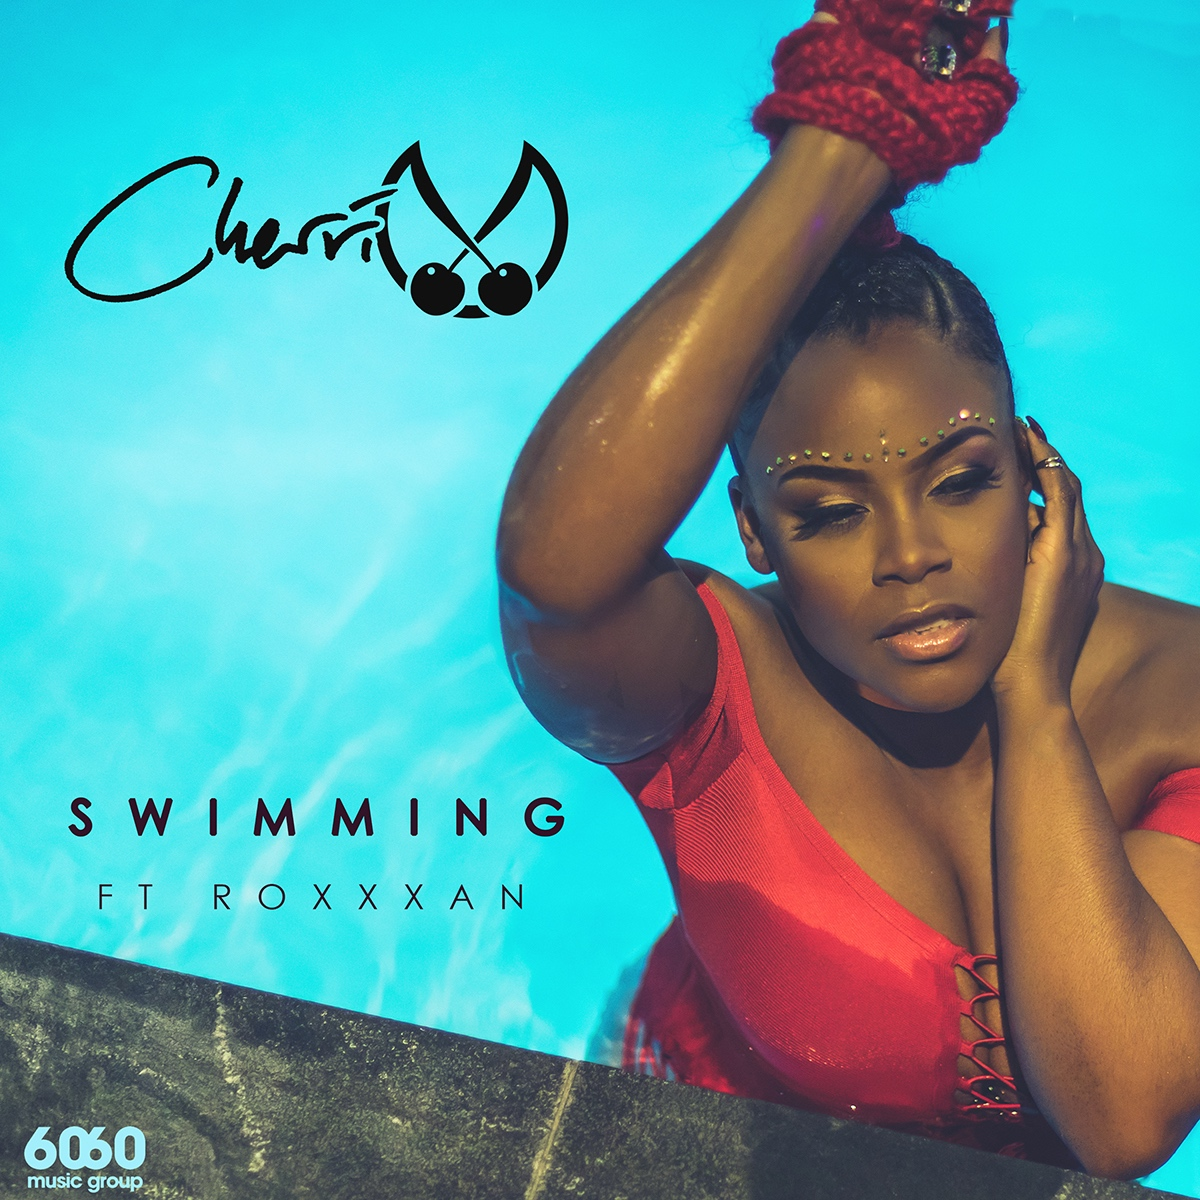 Cherri V Swimming Artwork